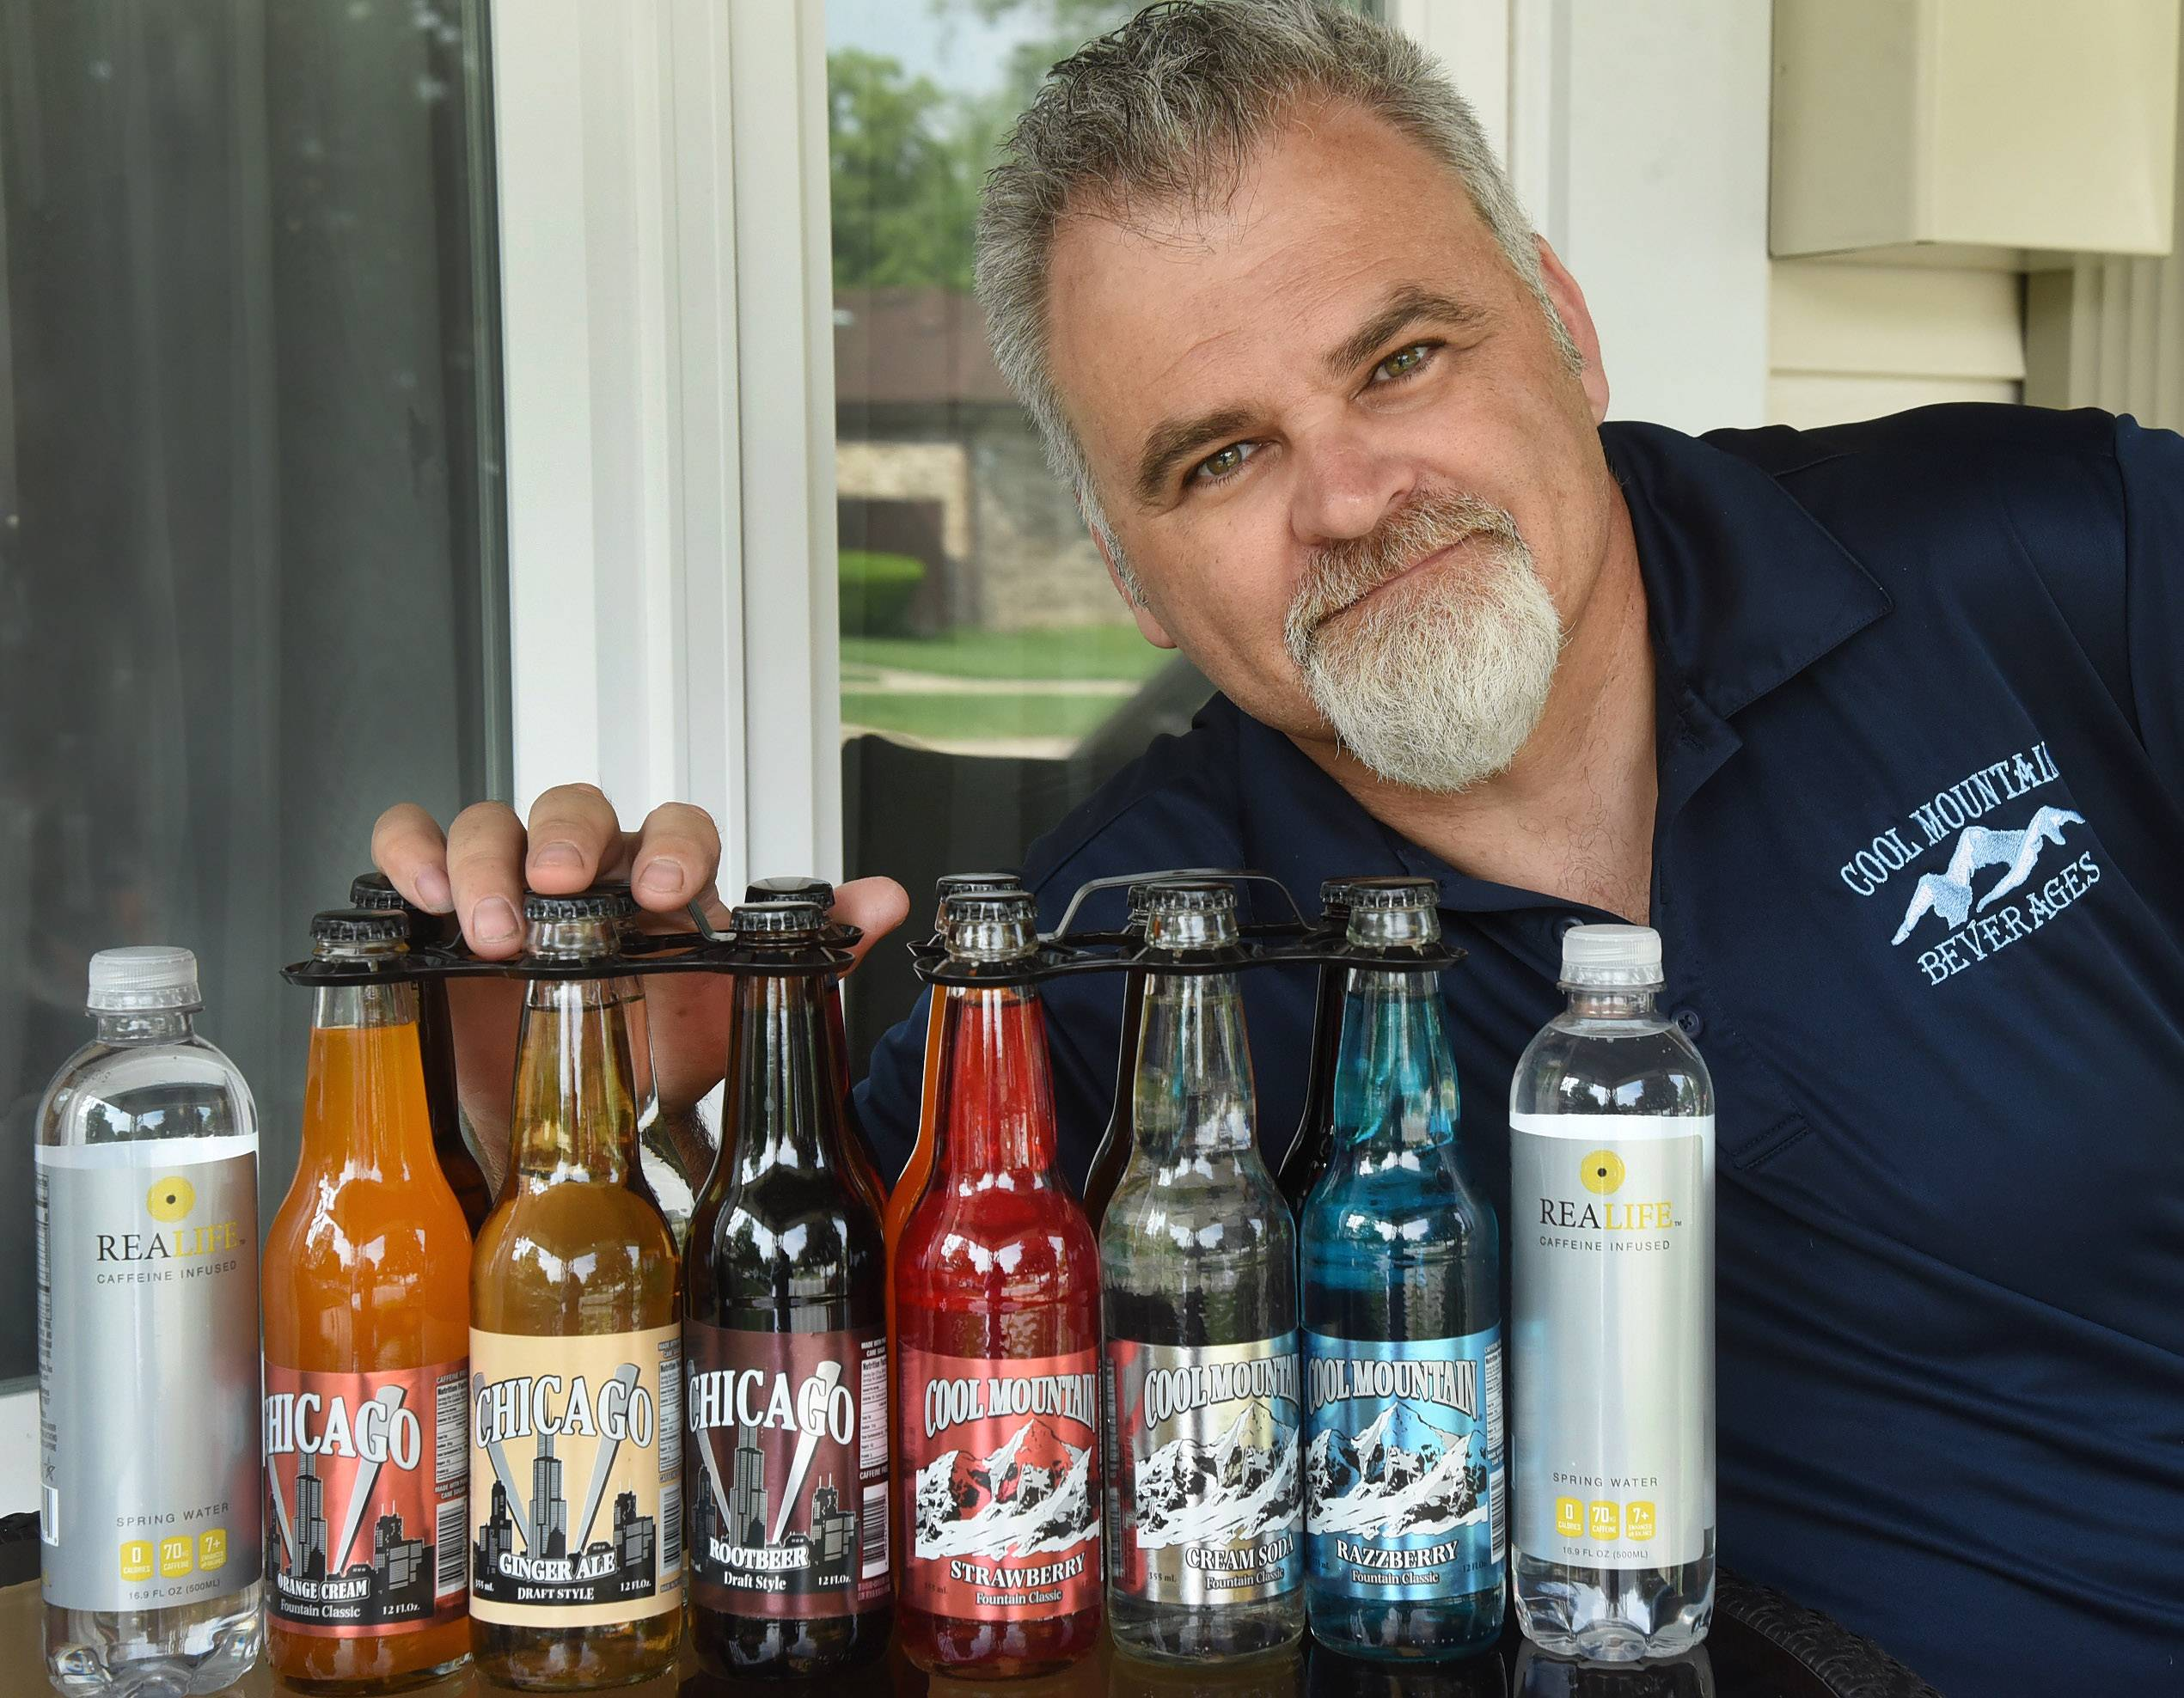 Bill Daker has been operating Cool Mountain Beverages for 20 years in Des Plaines.